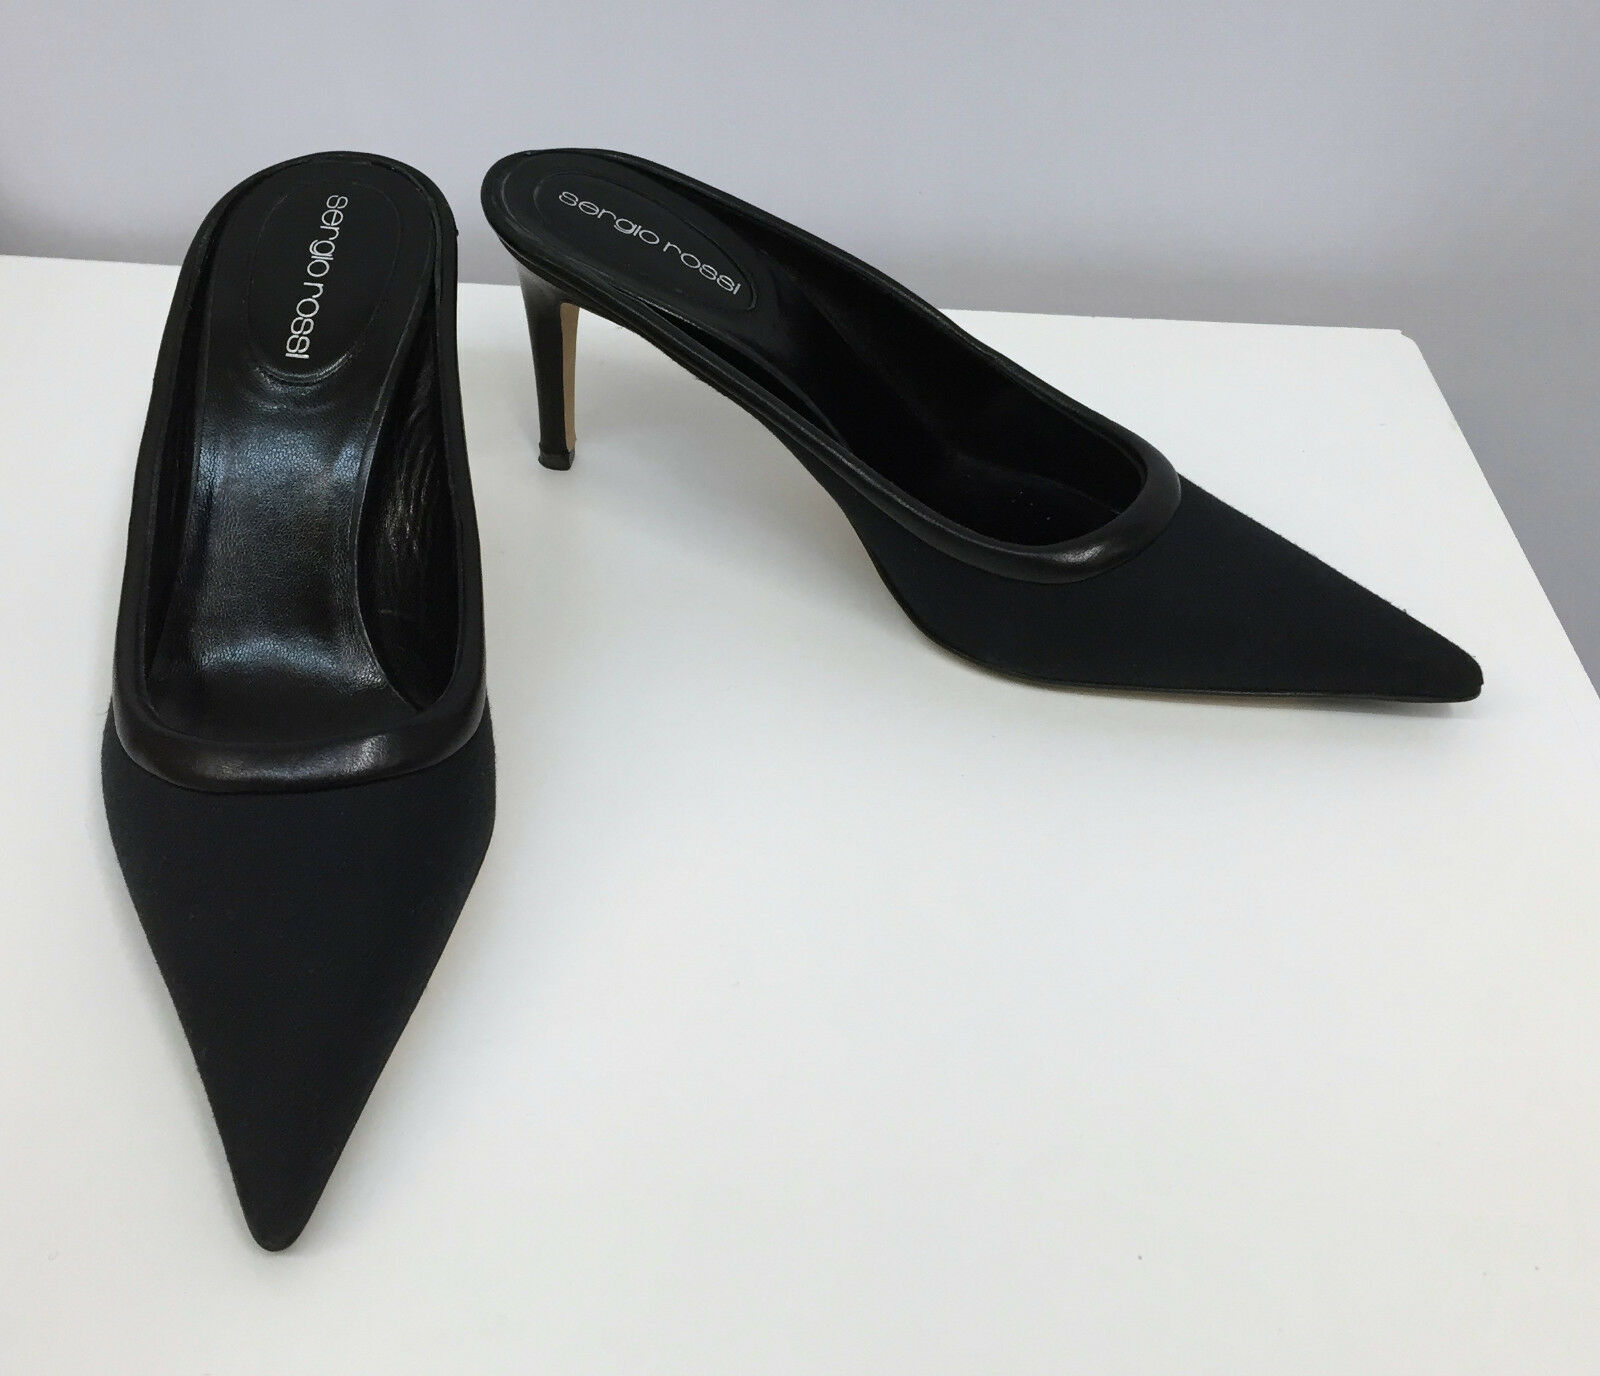 SERGIO ROSSI Schuhe MULES BLACK MICROFIBER AND LEATHER SIZE 37 1/2 7